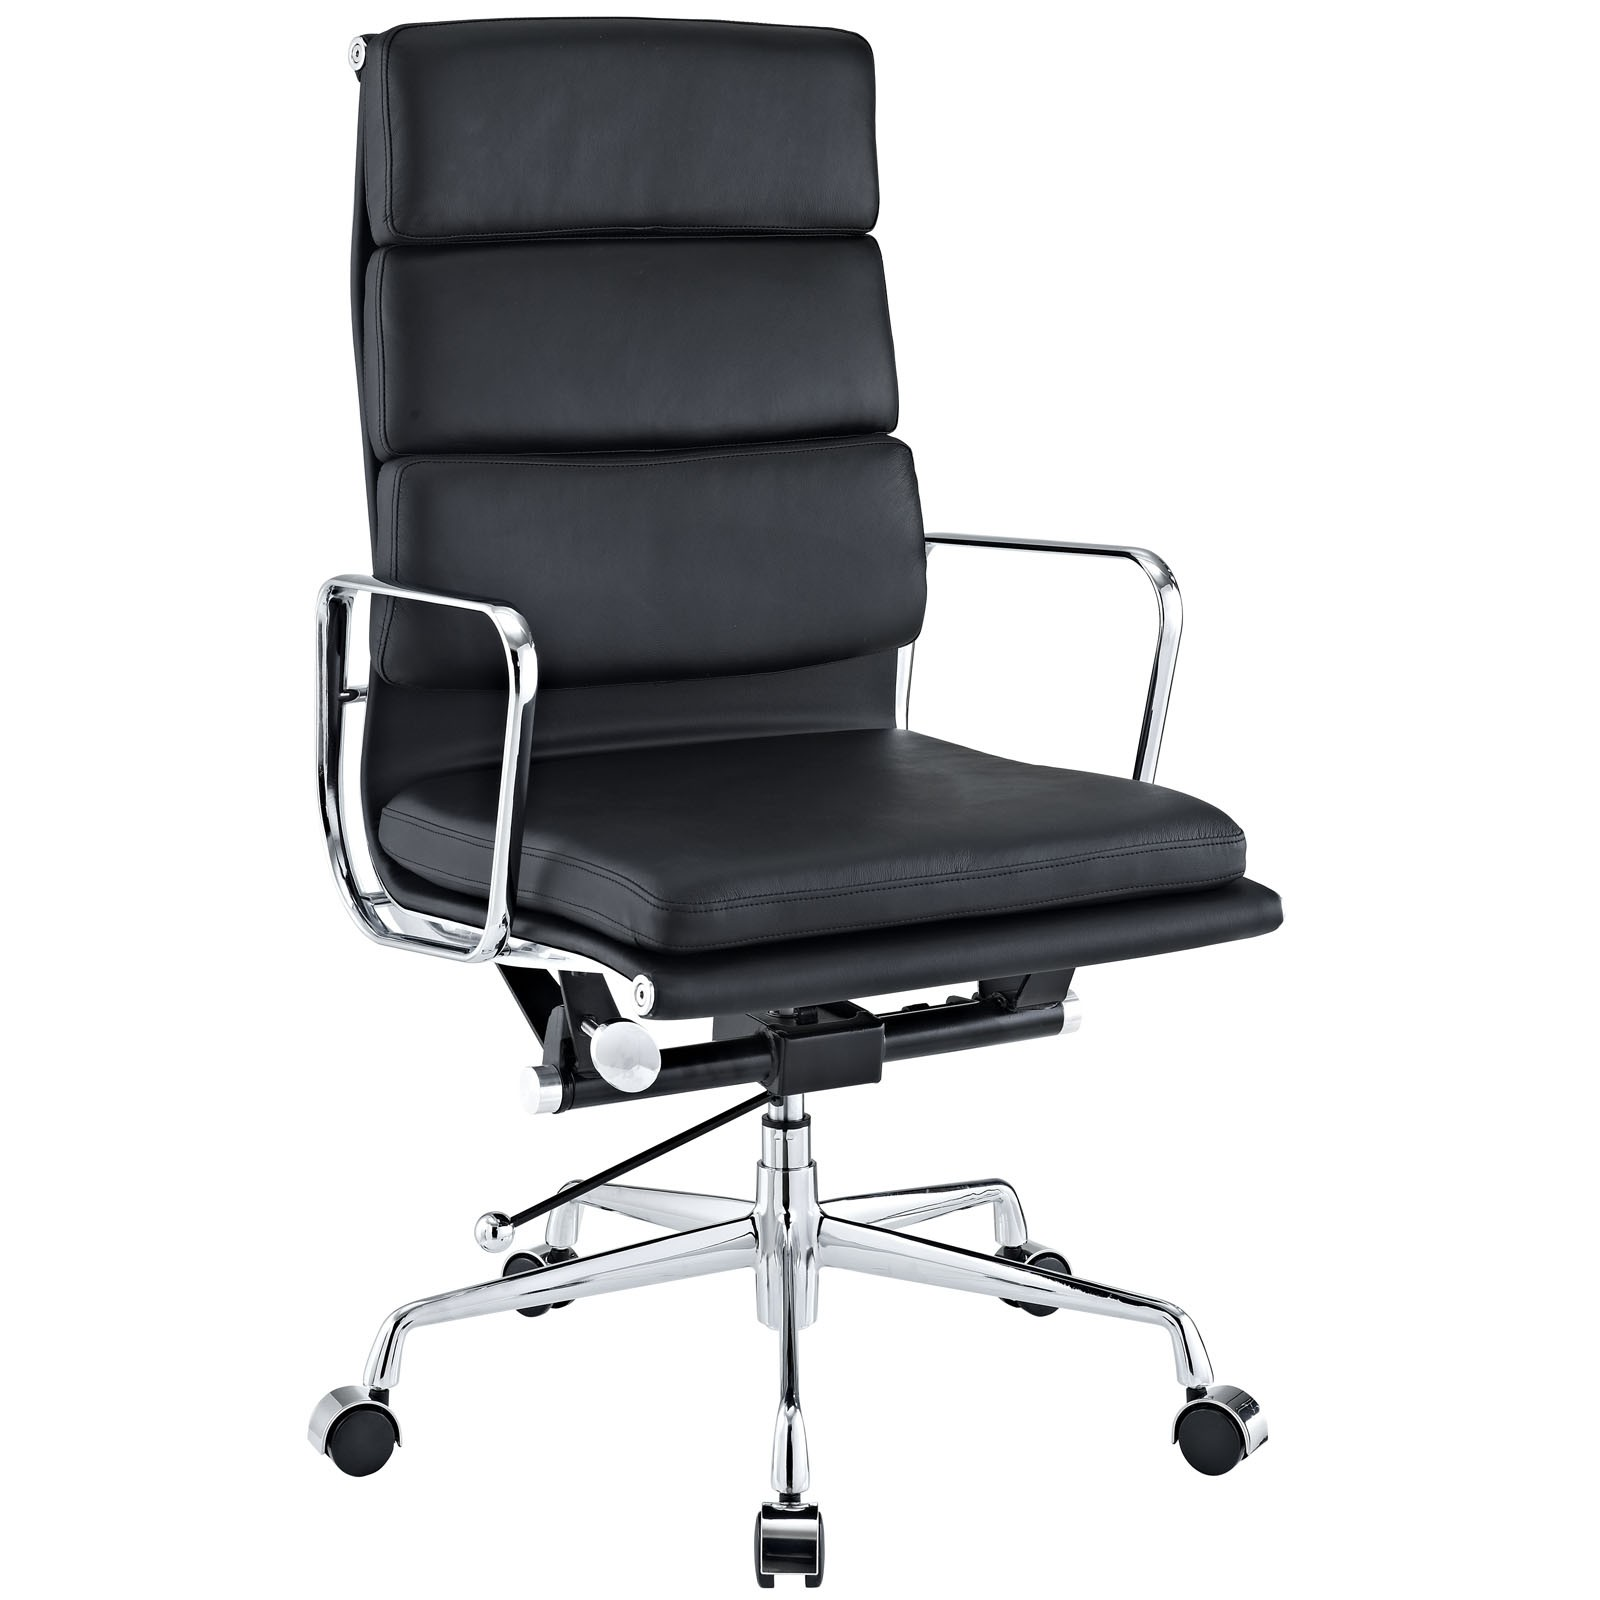 Classic Soft Pad Executive Office Chair